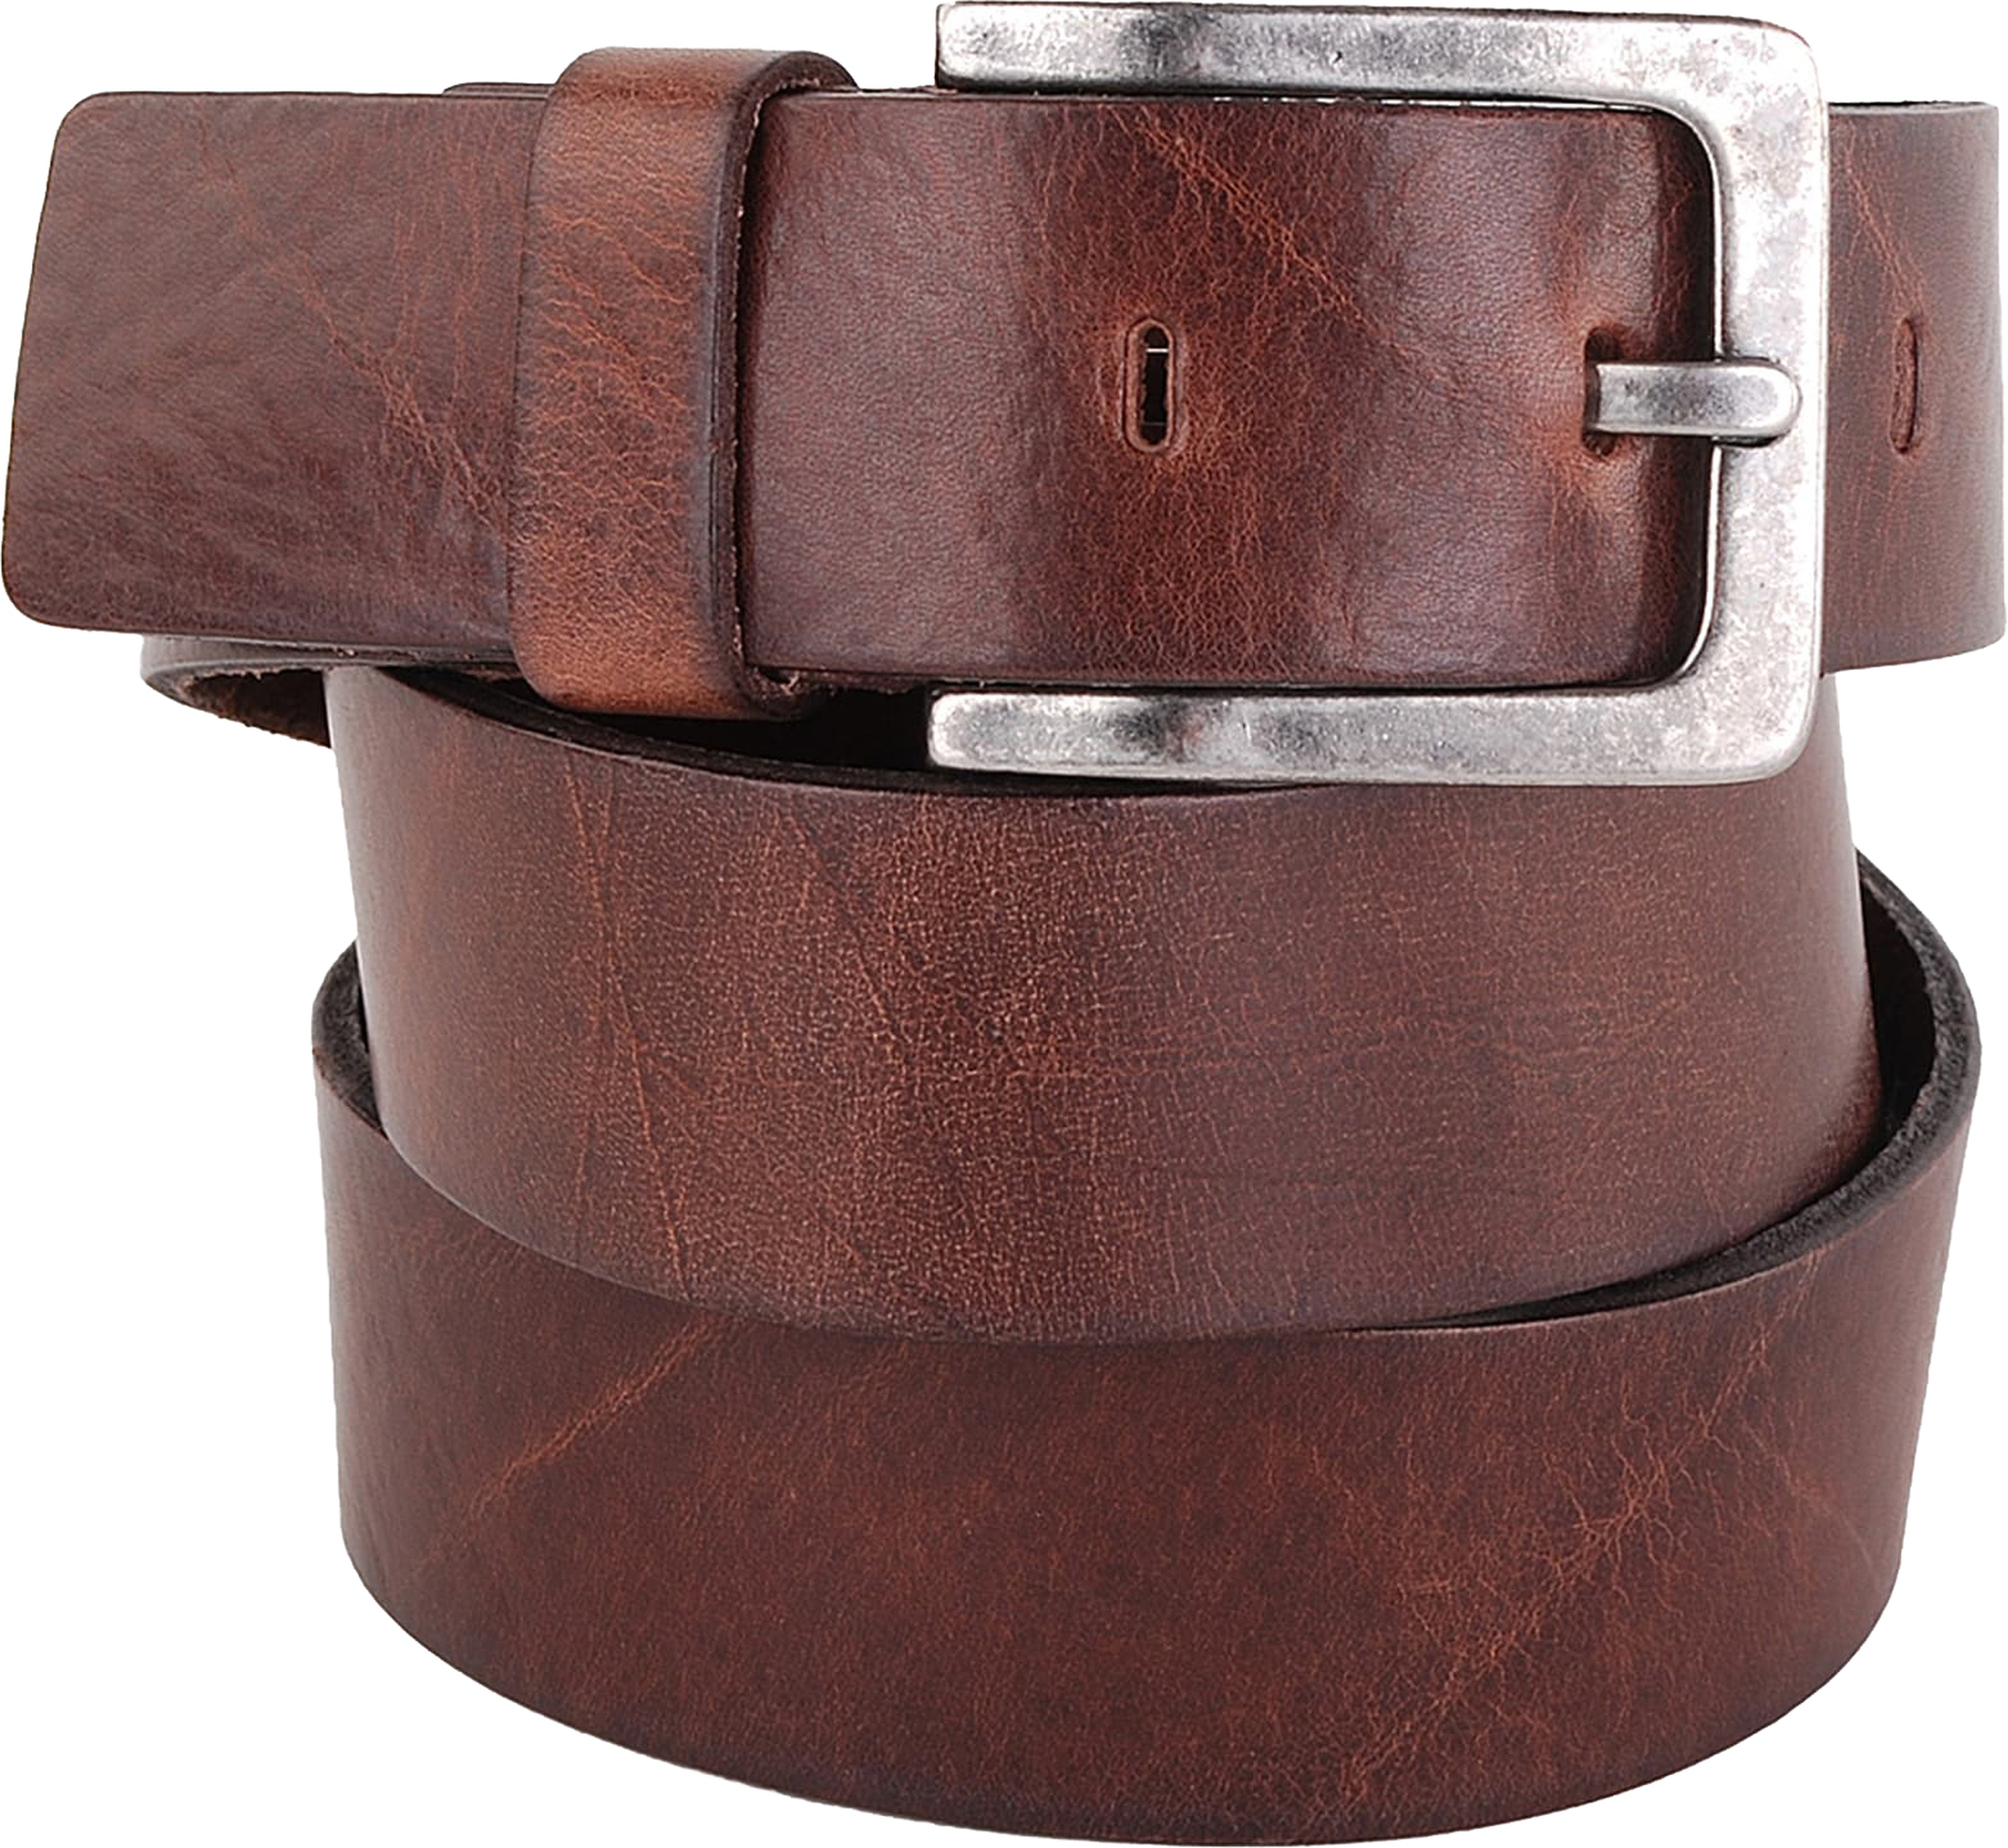 Profuomo Belt Polosh Brown